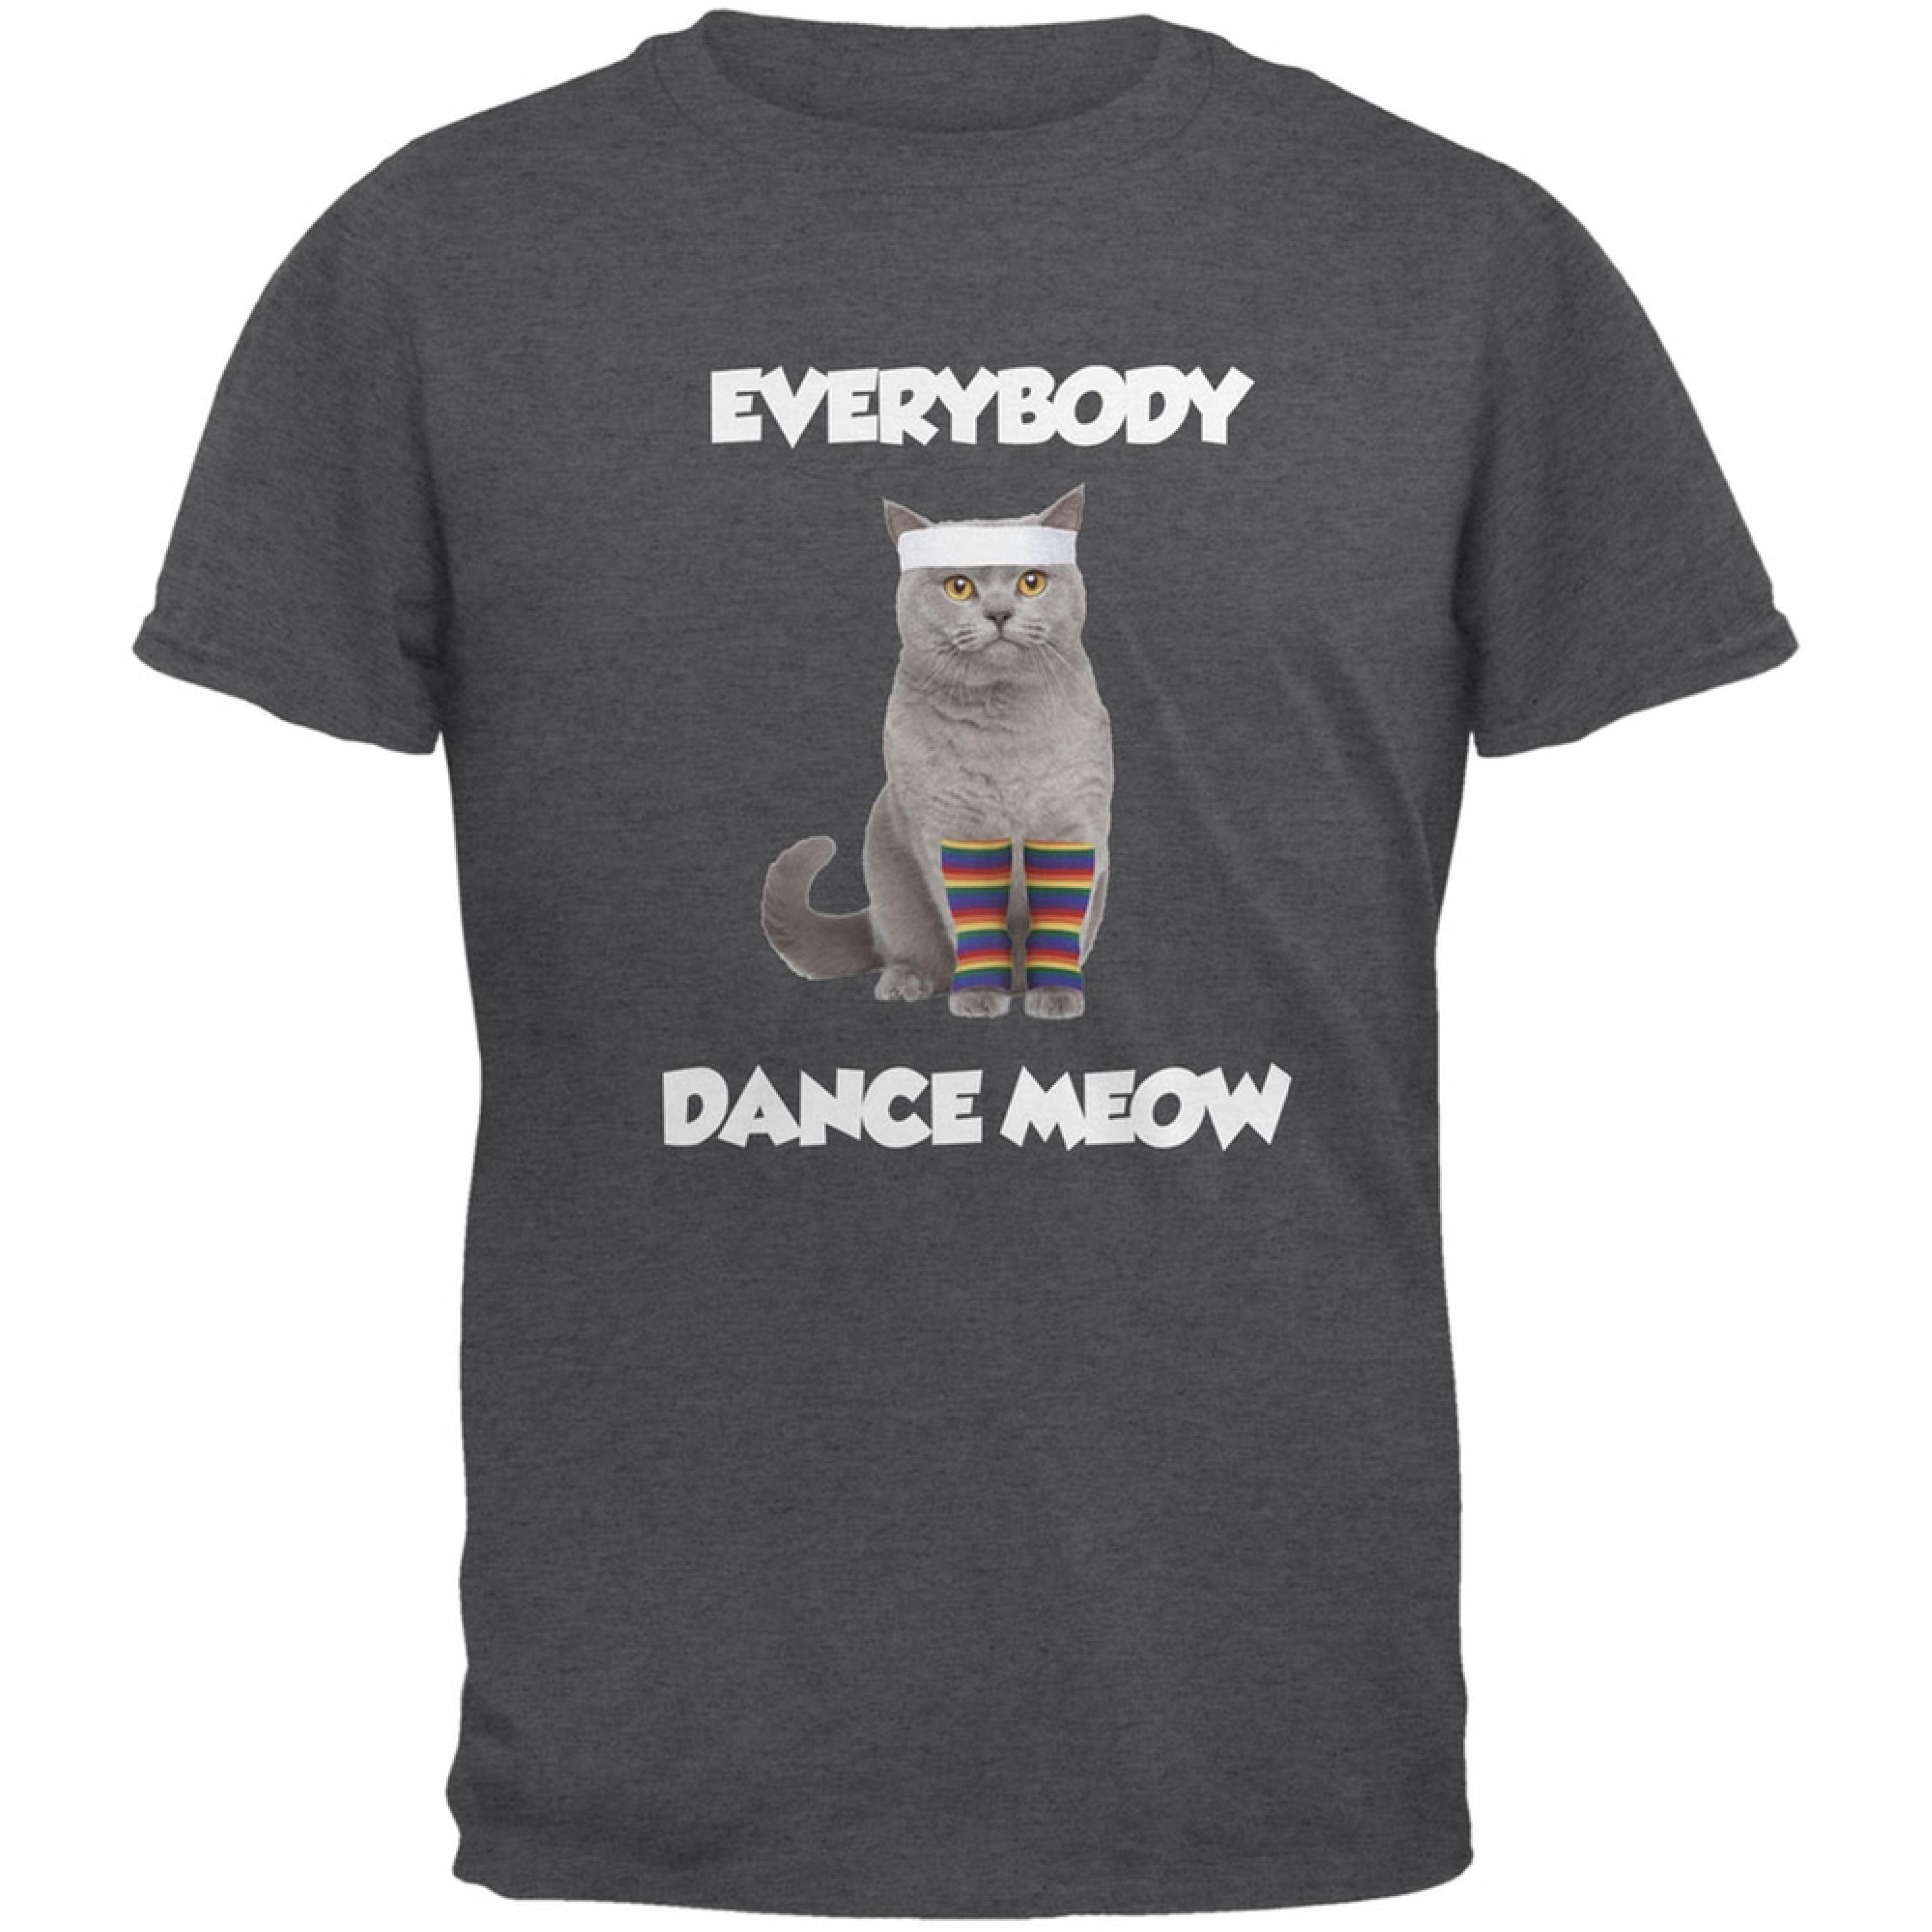 Everybody Dance Meow Dark Heather Adult T-Shirt